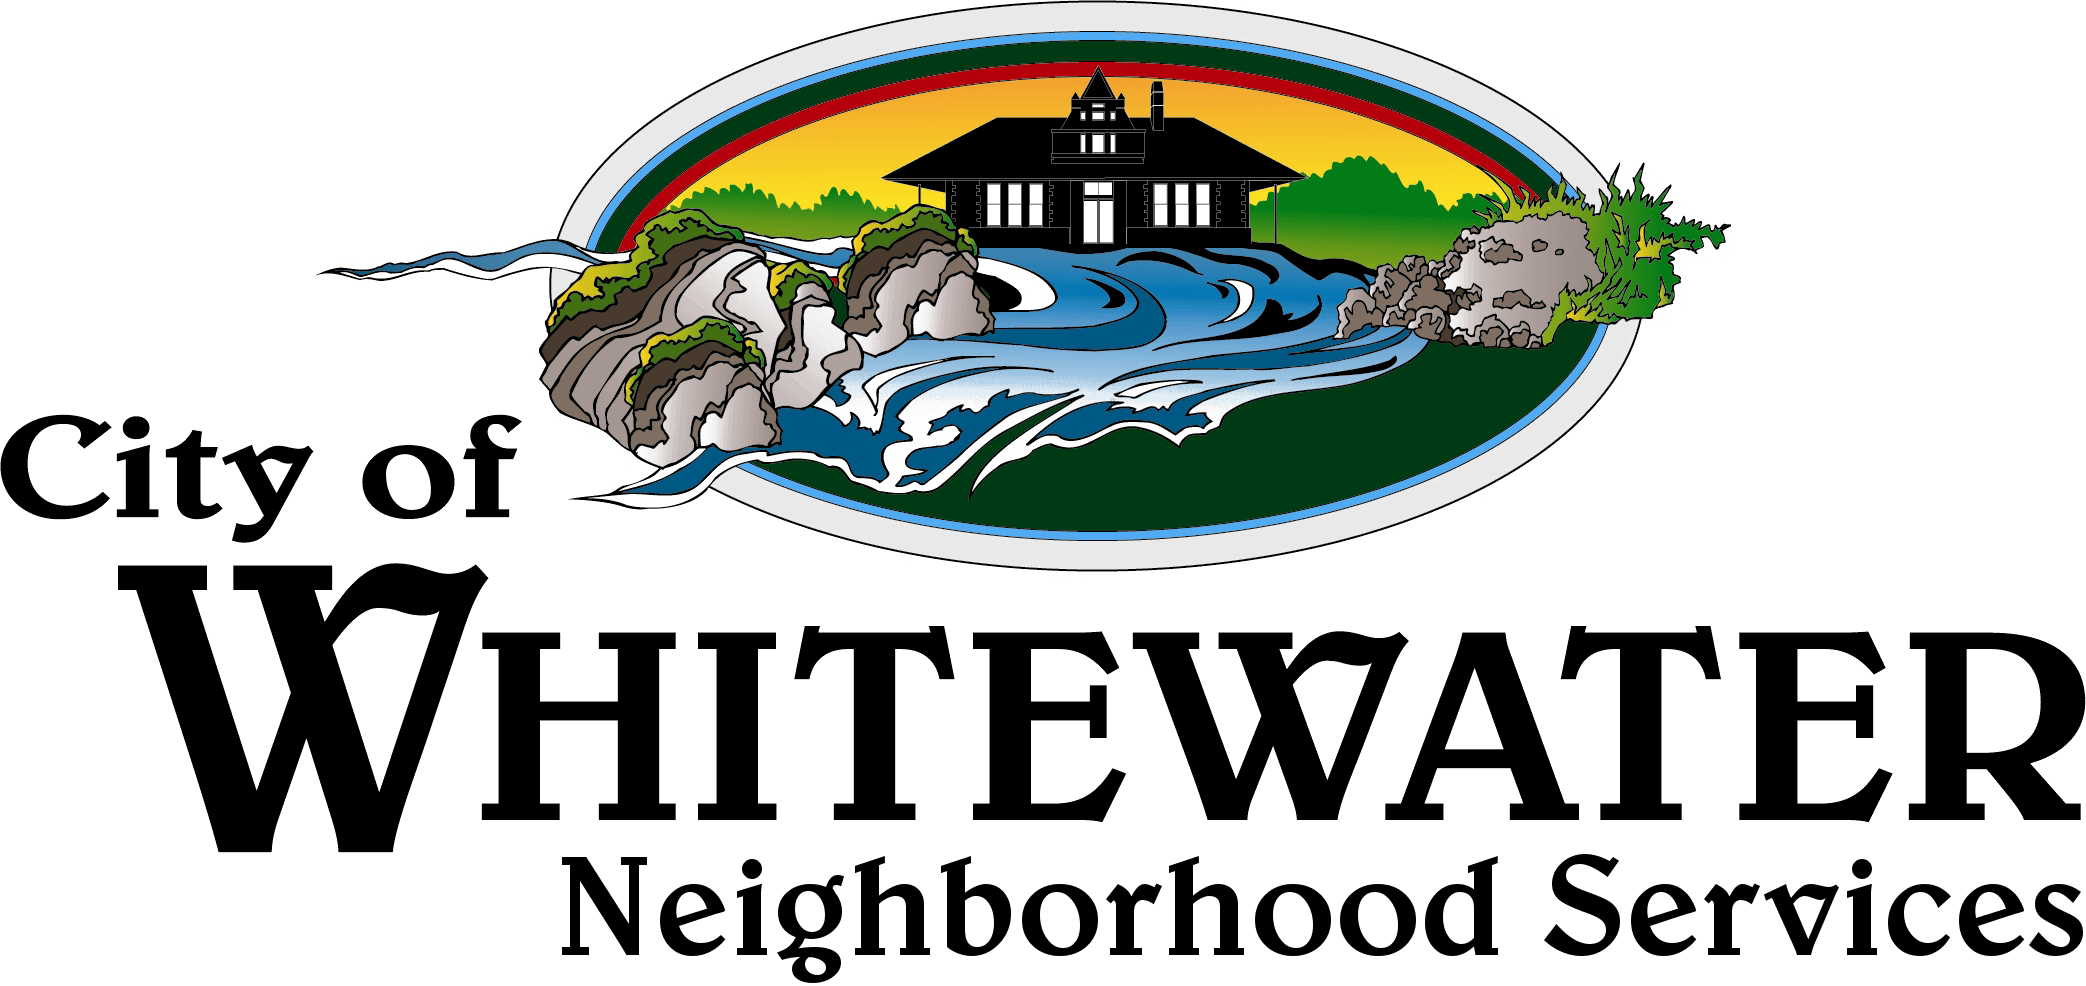 City of Whitewater Transparent Neighborhood Services